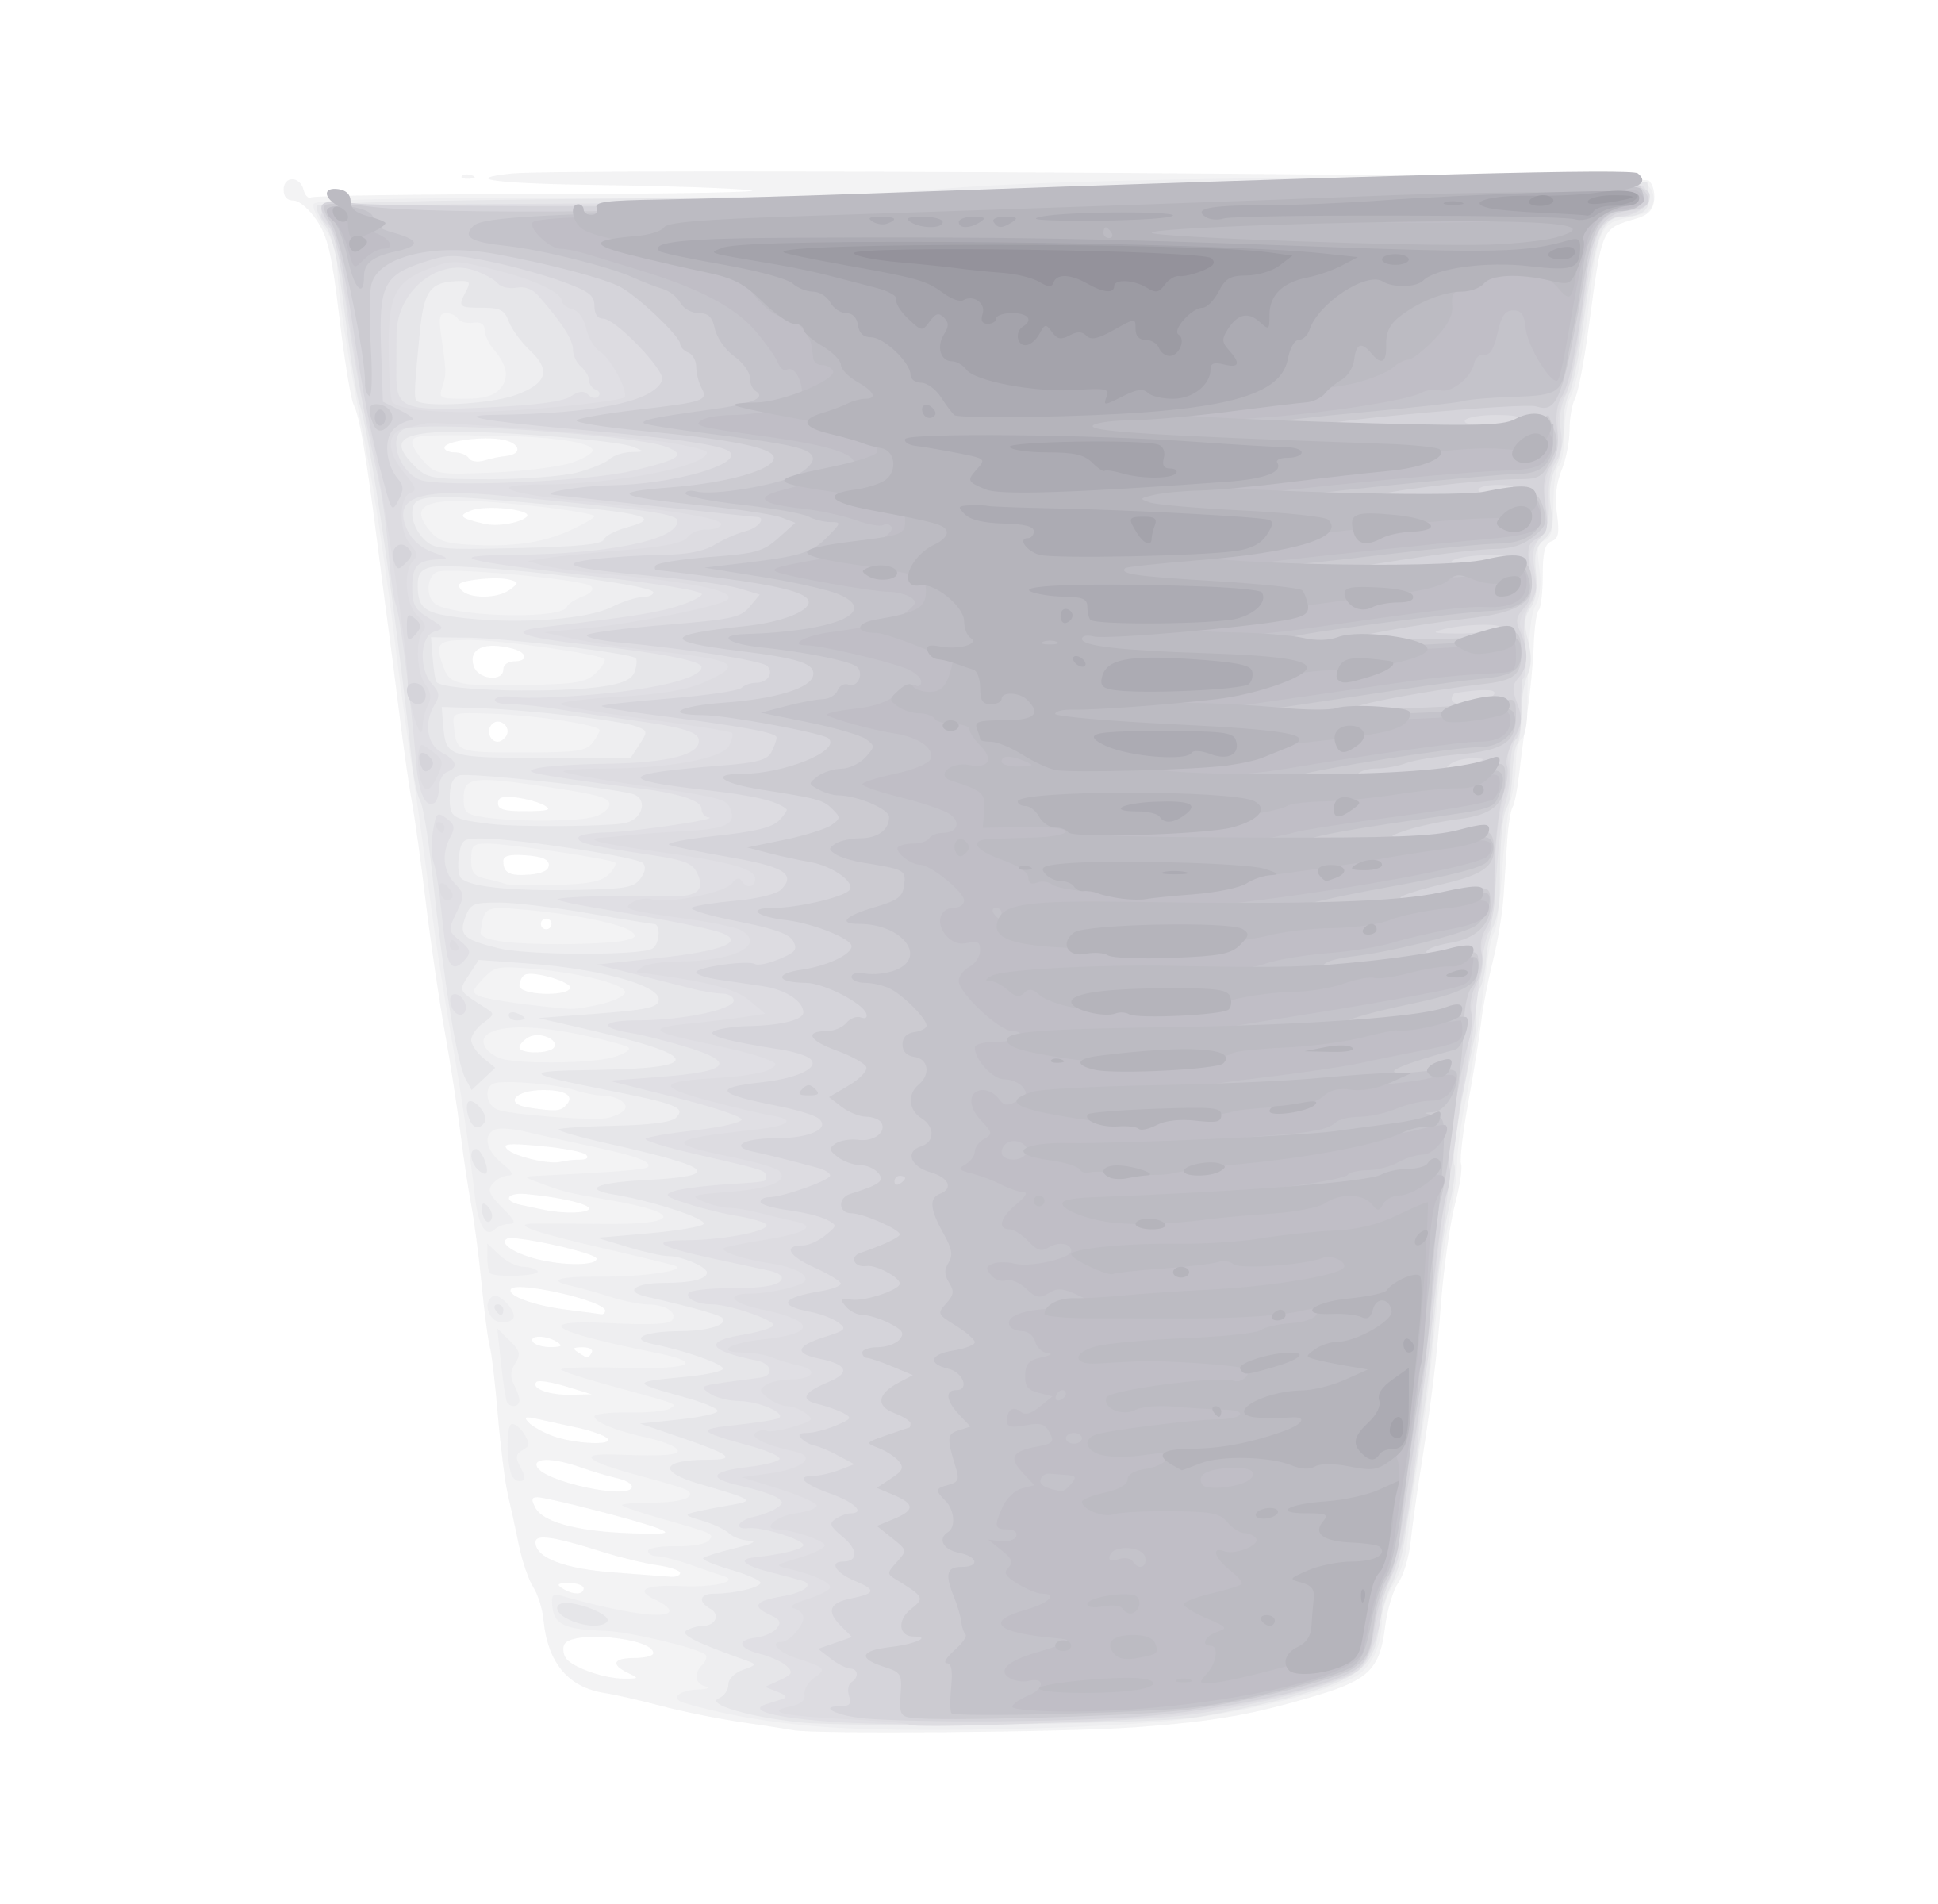 Plastic icons png free. Cup clipart clear cup